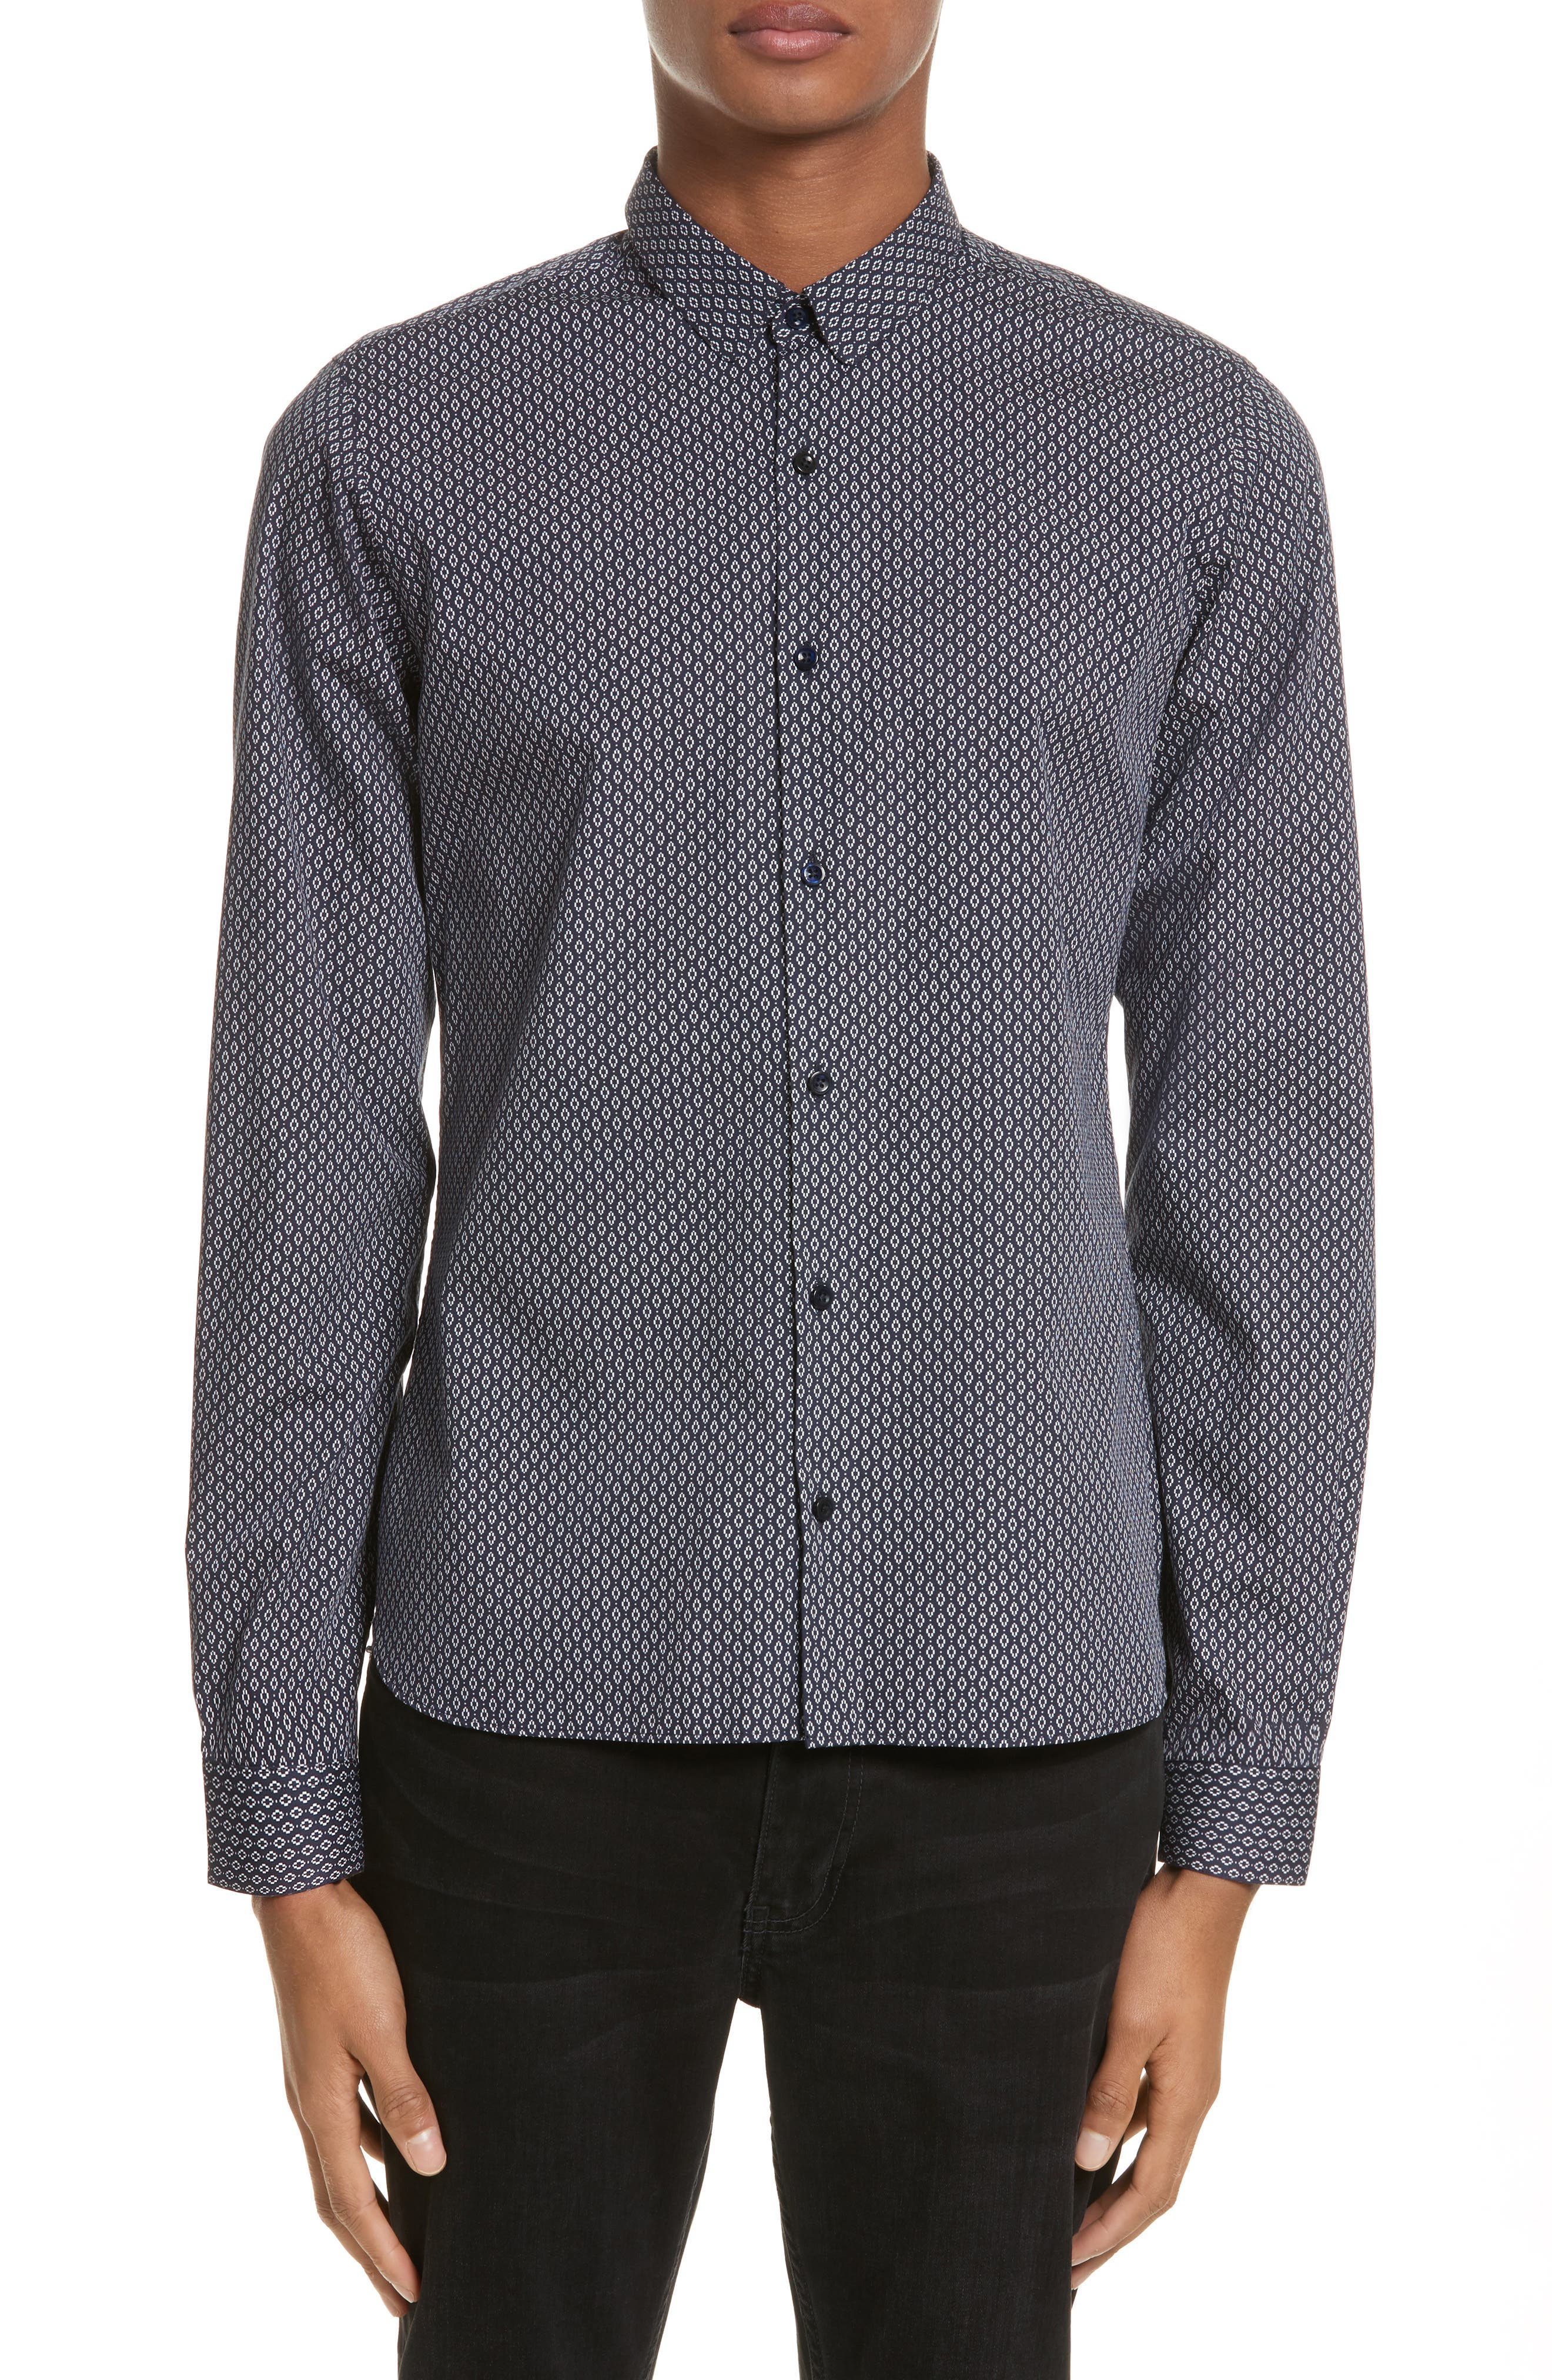 Alternate Image 1 Selected - The Kooples Diamond Print Shirt